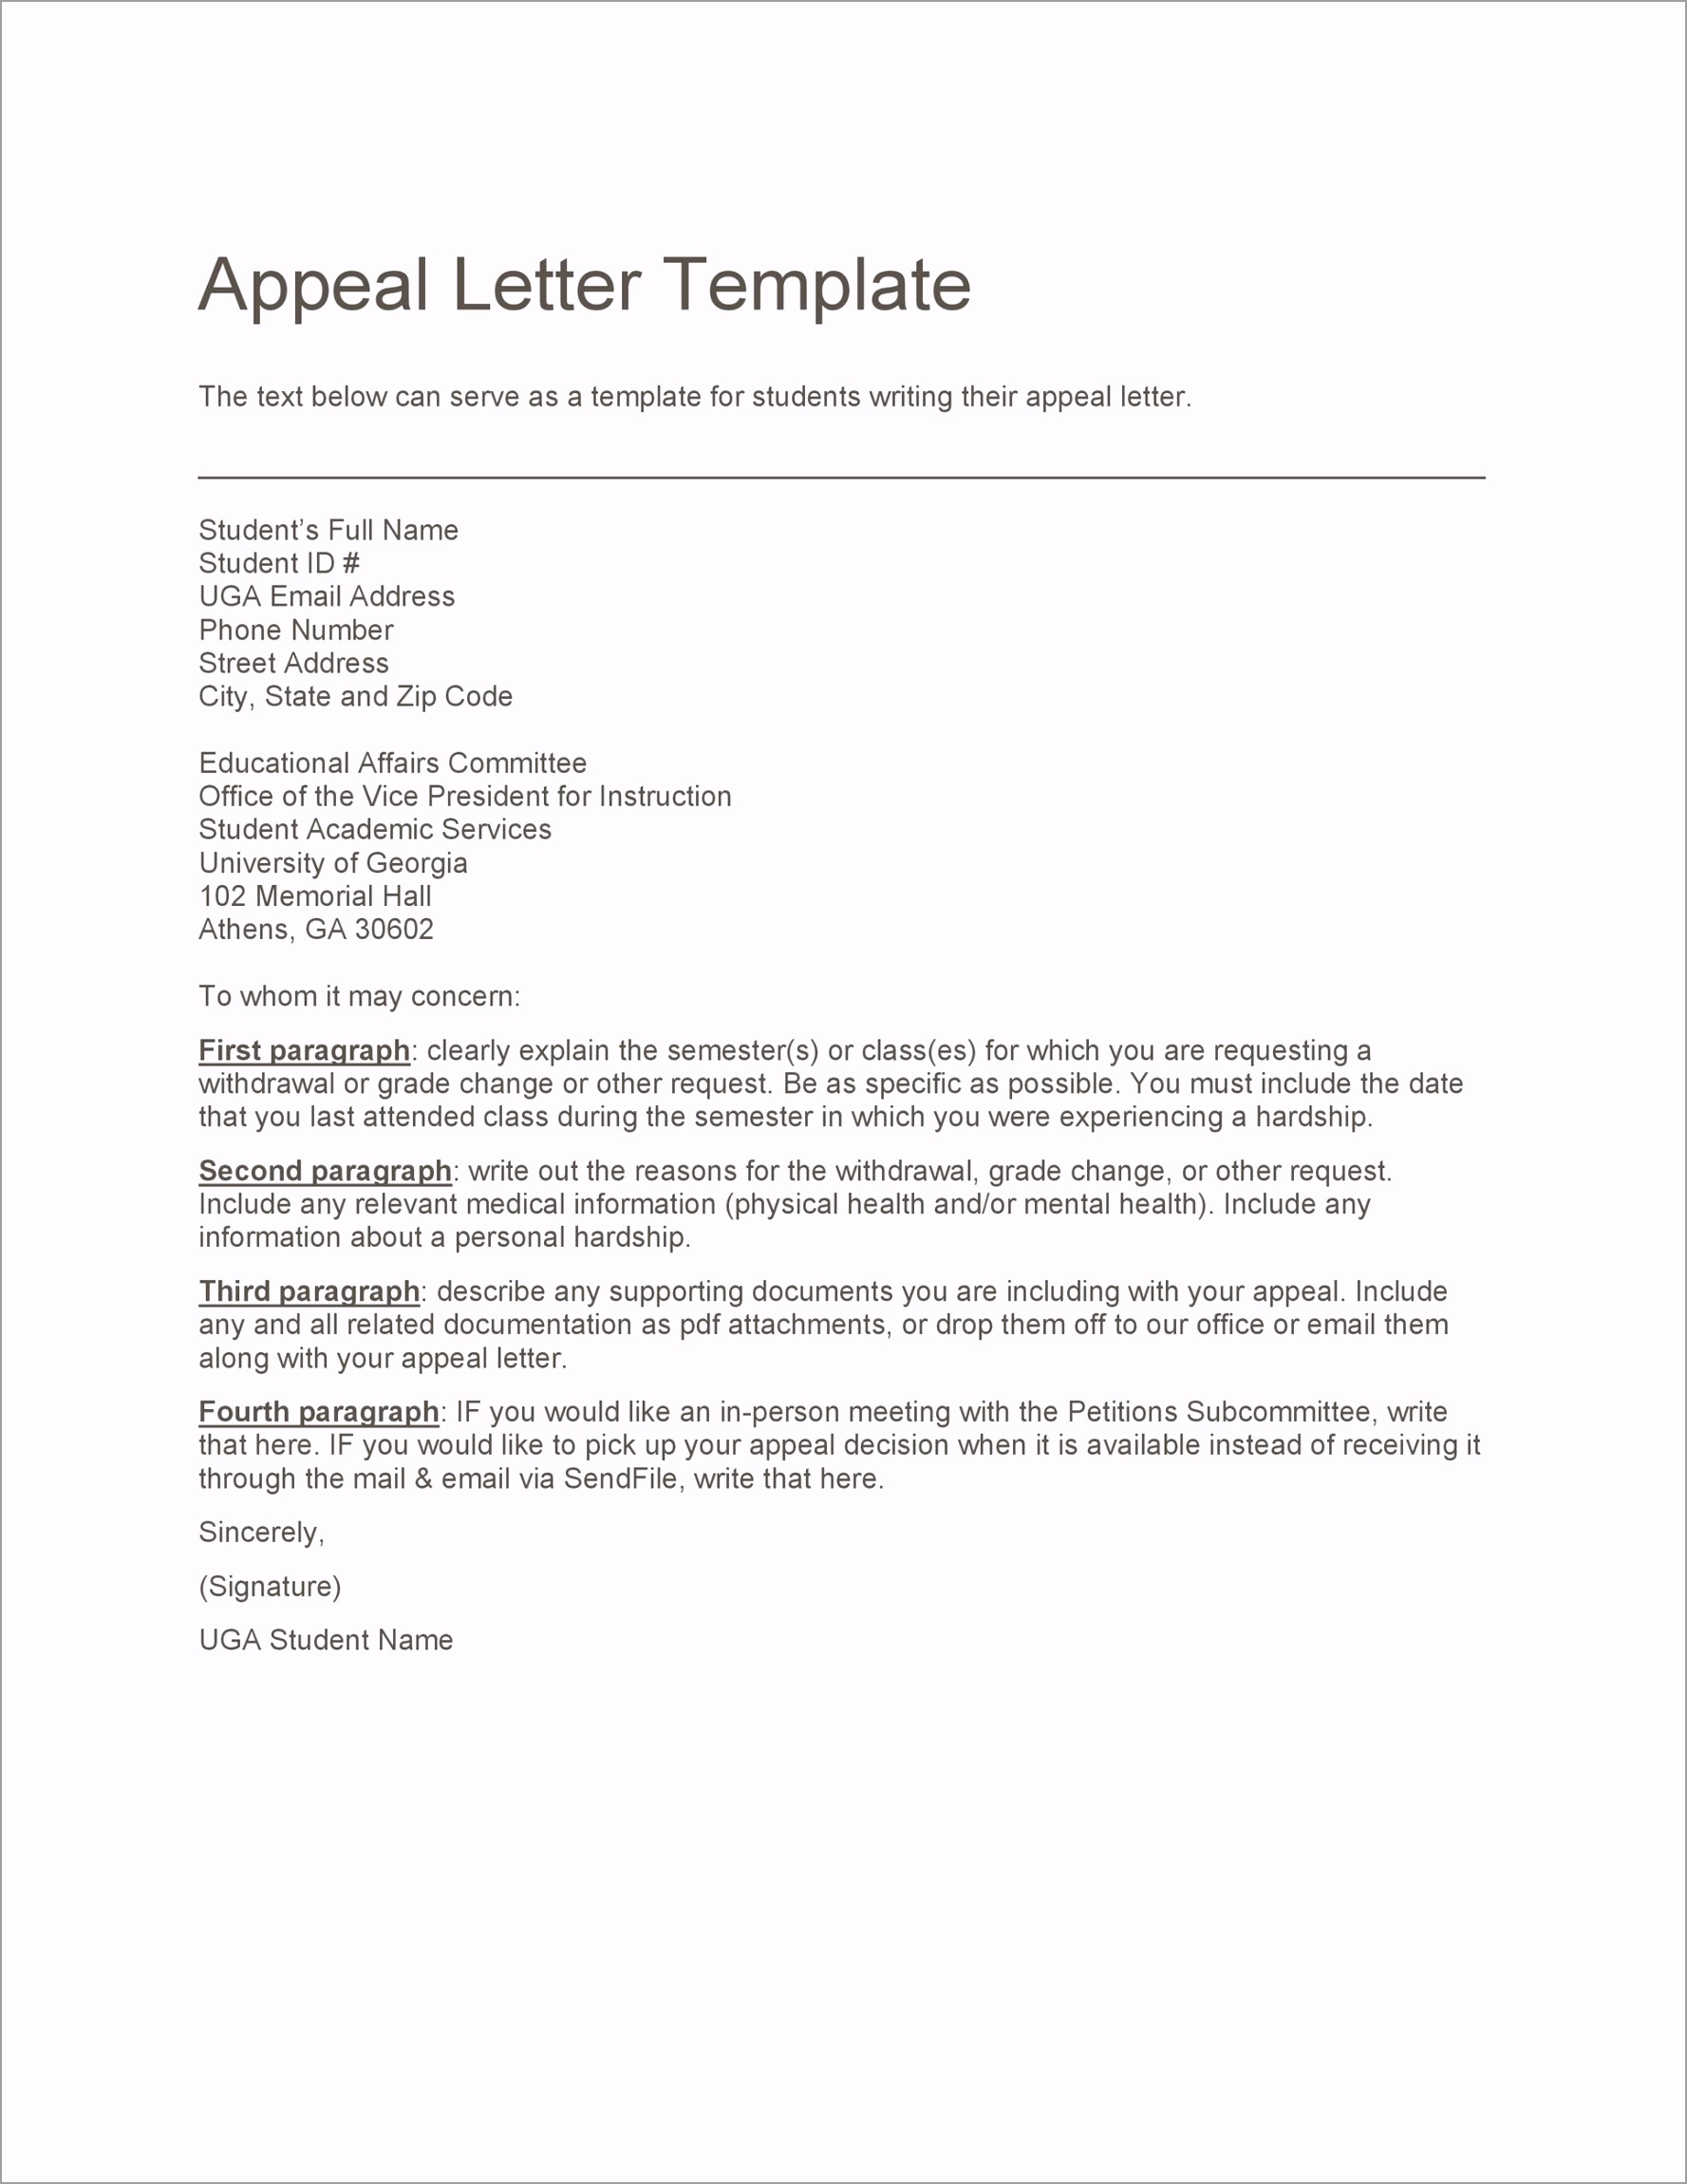 appeal letter 20 uaume